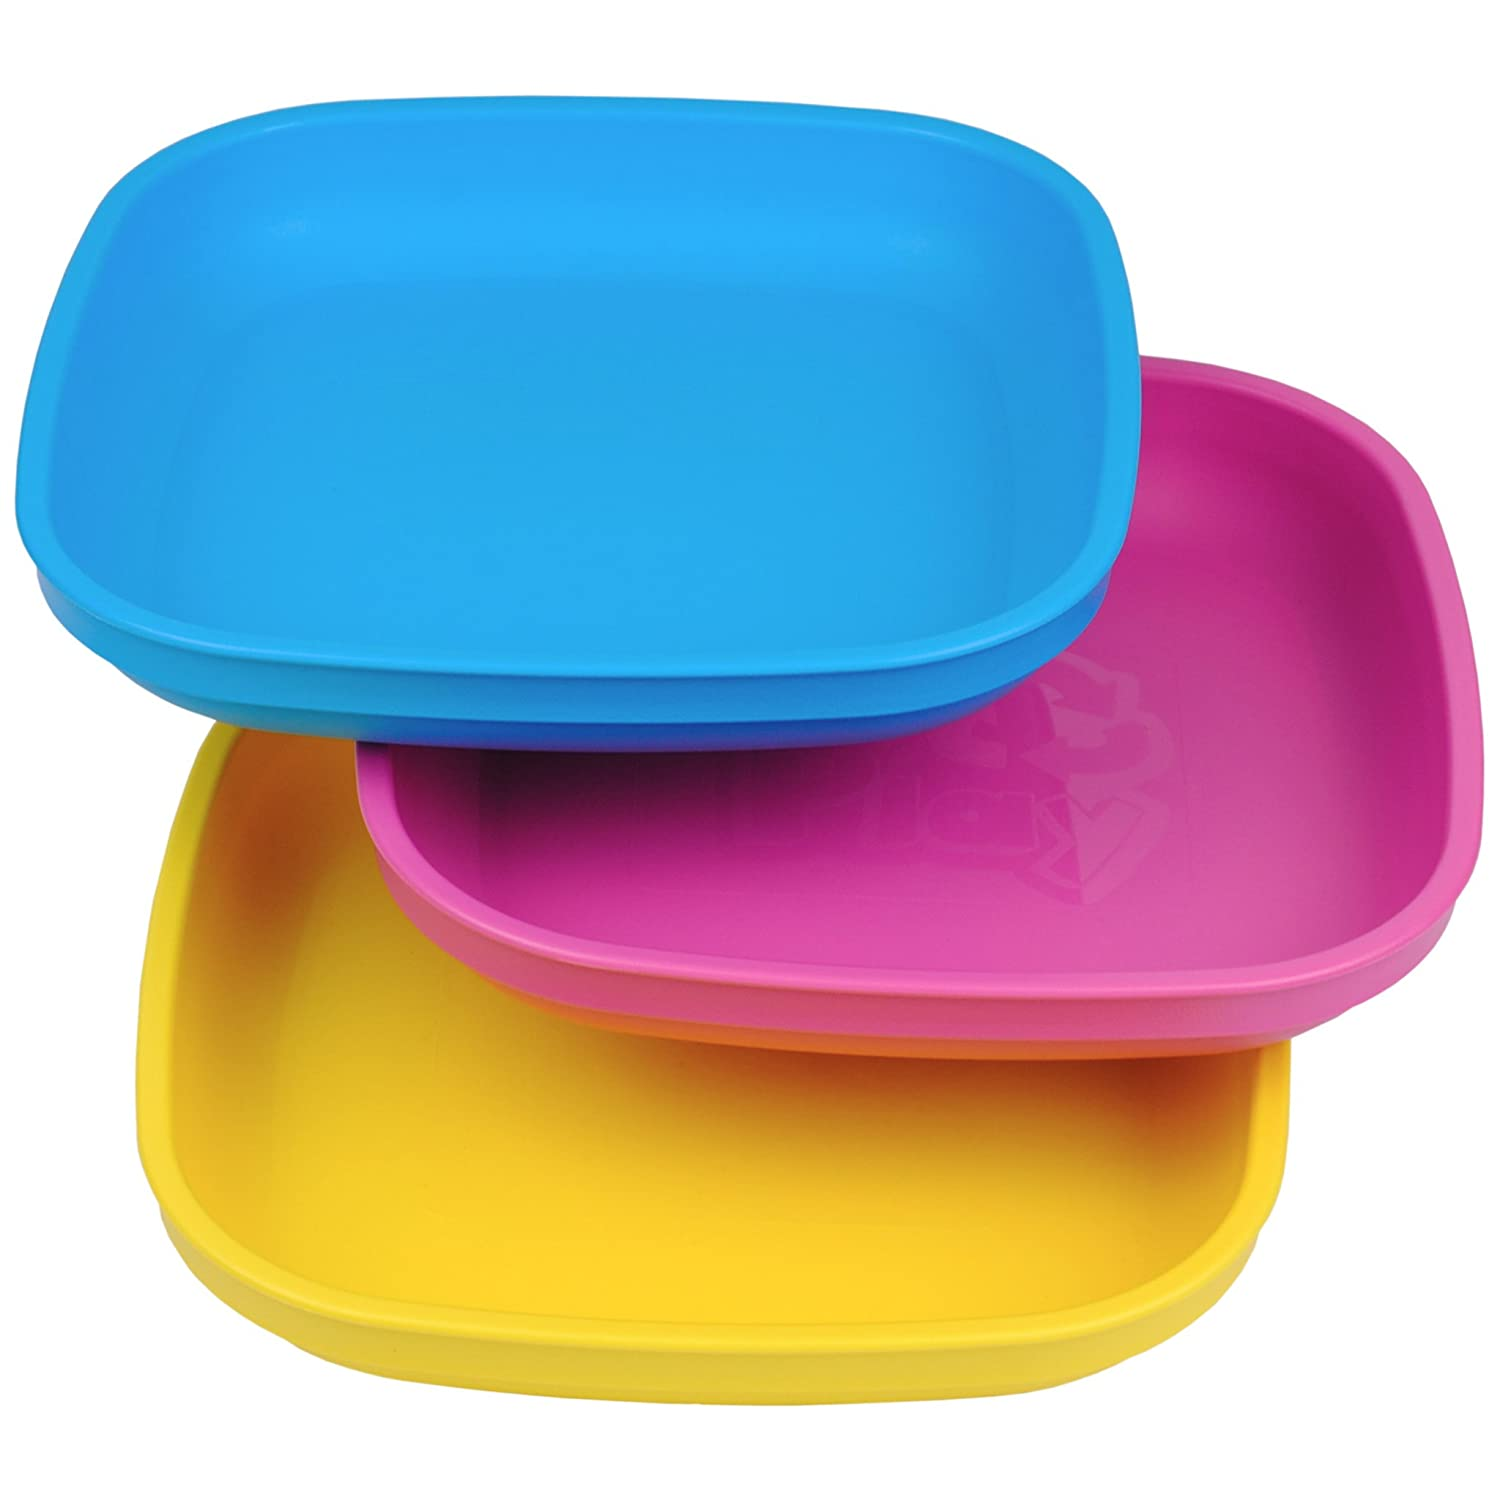 Re-Play Made In USA 3pk Plates with Deep Sides for Easy Baby, Toddler, Child Feeding - Sky Blue, Aqua, Navy Blue (True Blue) Re-Think It Inc.